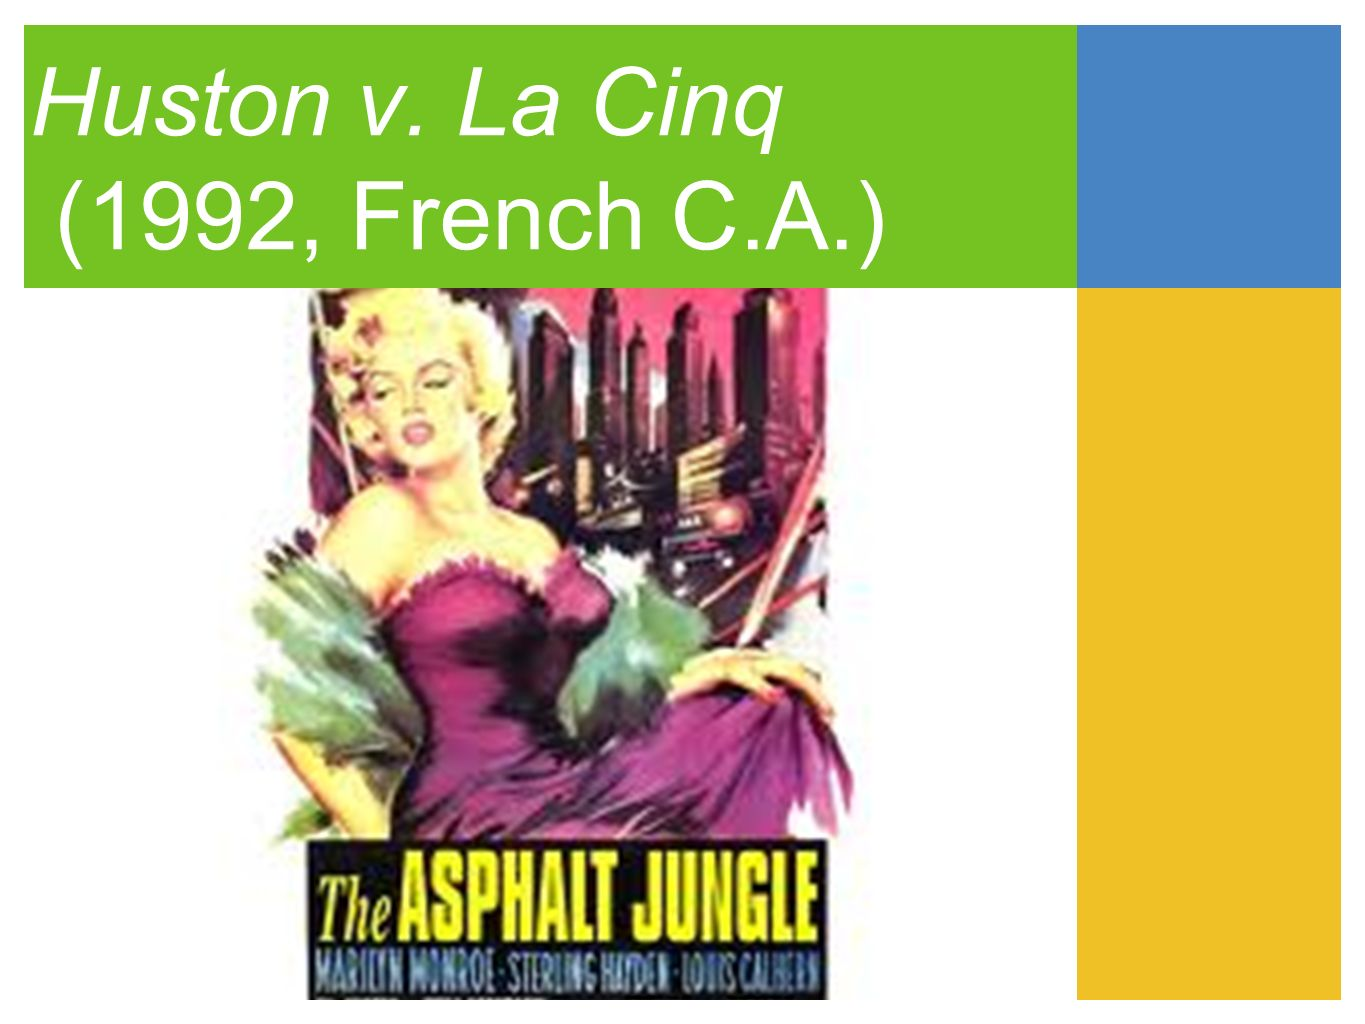 Huston v. La Cinq (1992, French C.A.)